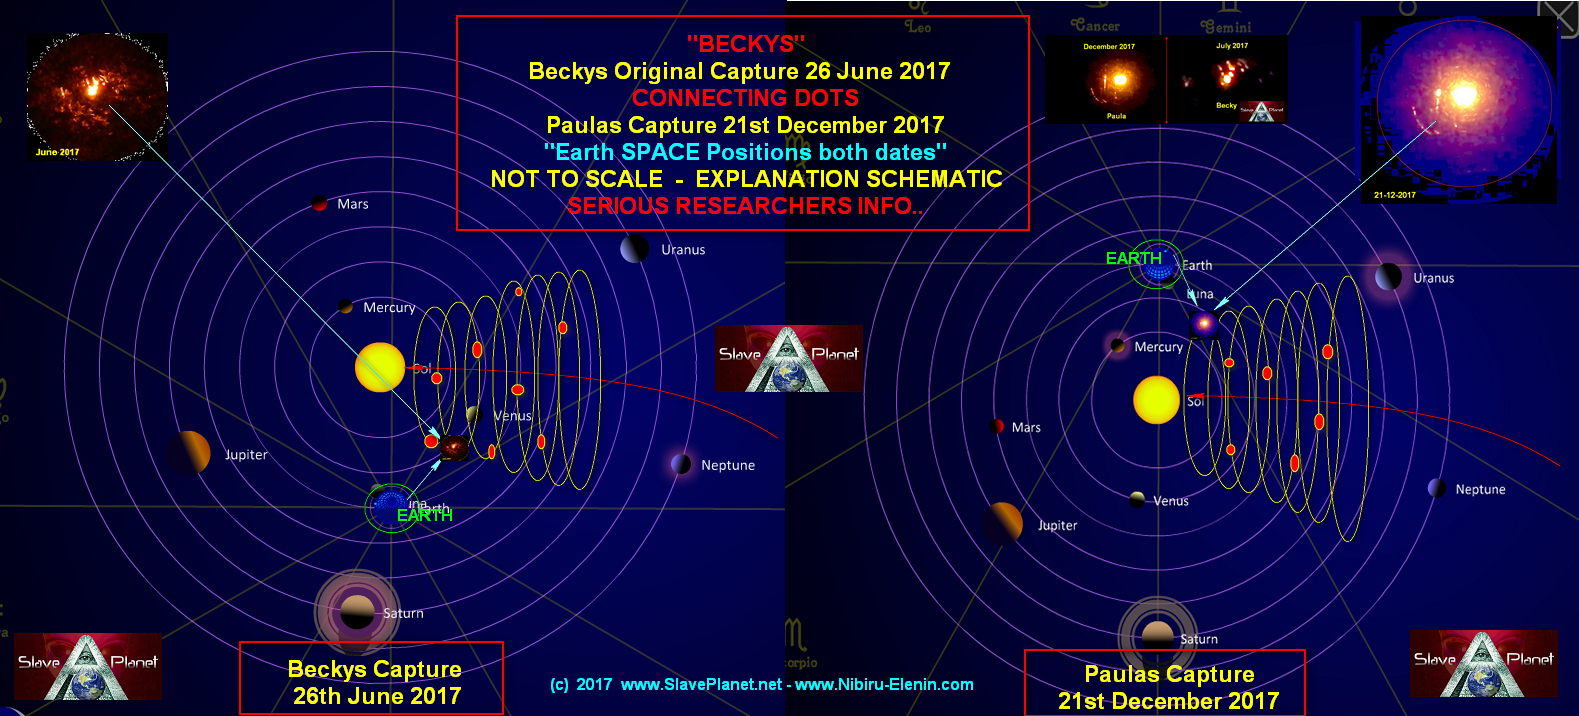 FULL Planet X System BECKYS 4th Capture INVESTIGATED Dec 2017